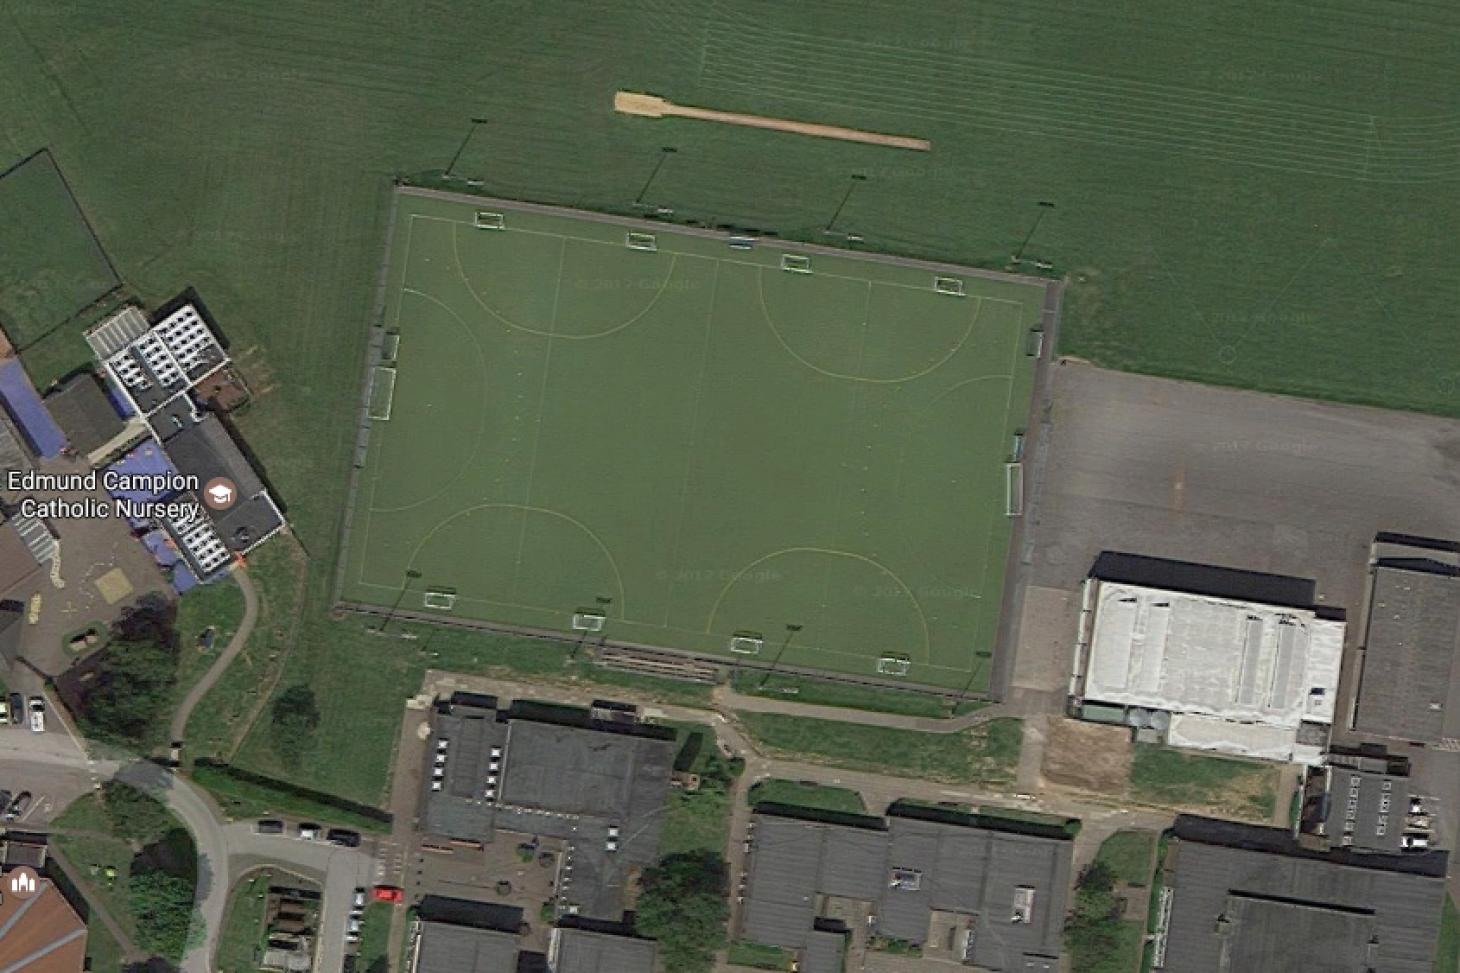 Altwood Church of England School Outdoor | Astroturf hockey pitch